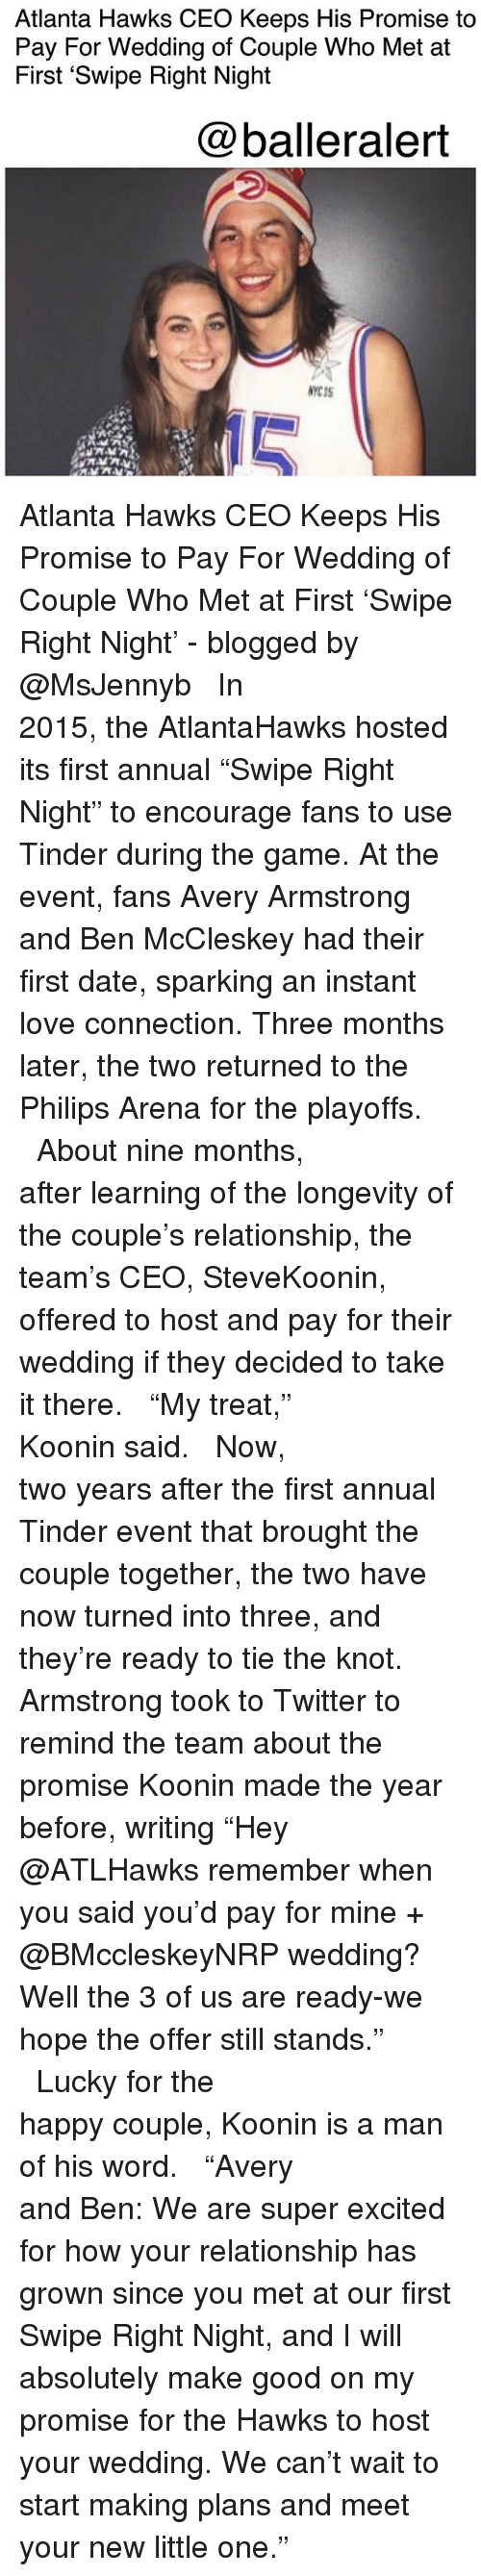 "Knotted: Atlanta Hawks CEO Keeps His Promise to  Pay For Wedding of Couple Who Met at  First 'Swipe Right Night  @balleralert  NYCIS  10 Atlanta Hawks CEO Keeps His Promise to Pay For Wedding of Couple Who Met at First 'Swipe Right Night' - blogged by @MsJennyb ⠀⠀⠀⠀⠀⠀⠀⠀⠀ ⠀⠀⠀⠀⠀⠀⠀⠀⠀ In 2015, the AtlantaHawks hosted its first annual ""Swipe Right Night"" to encourage fans to use Tinder during the game. At the event, fans Avery Armstrong and Ben McCleskey had their first date, sparking an instant love connection. Three months later, the two returned to the Philips Arena for the playoffs. ⠀⠀⠀⠀⠀⠀⠀⠀⠀ ⠀⠀⠀⠀⠀⠀⠀⠀⠀ About nine months, after learning of the longevity of the couple's relationship, the team's CEO, SteveKoonin, offered to host and pay for their wedding if they decided to take it there. ⠀⠀⠀⠀⠀⠀⠀⠀⠀ ⠀⠀⠀⠀⠀⠀⠀⠀⠀ ""My treat,"" Koonin said. ⠀⠀⠀⠀⠀⠀⠀⠀⠀ ⠀⠀⠀⠀⠀⠀⠀⠀⠀ Now, two years after the first annual Tinder event that brought the couple together, the two have now turned into three, and they're ready to tie the knot. Armstrong took to Twitter to remind the team about the promise Koonin made the year before, writing ""Hey @ATLHawks remember when you said you'd pay for mine + @BMccleskeyNRP wedding? Well the 3 of us are ready-we hope the offer still stands."" ⠀⠀⠀⠀⠀⠀⠀⠀⠀ ⠀⠀⠀⠀⠀⠀⠀⠀⠀ Lucky for the happy couple, Koonin is a man of his word. ⠀⠀⠀⠀⠀⠀⠀⠀⠀ ⠀⠀⠀⠀⠀⠀⠀⠀⠀ ""Avery and Ben: We are super excited for how your relationship has grown since you met at our first Swipe Right Night, and I will absolutely make good on my promise for the Hawks to host your wedding. We can't wait to start making plans and meet your new little one."""